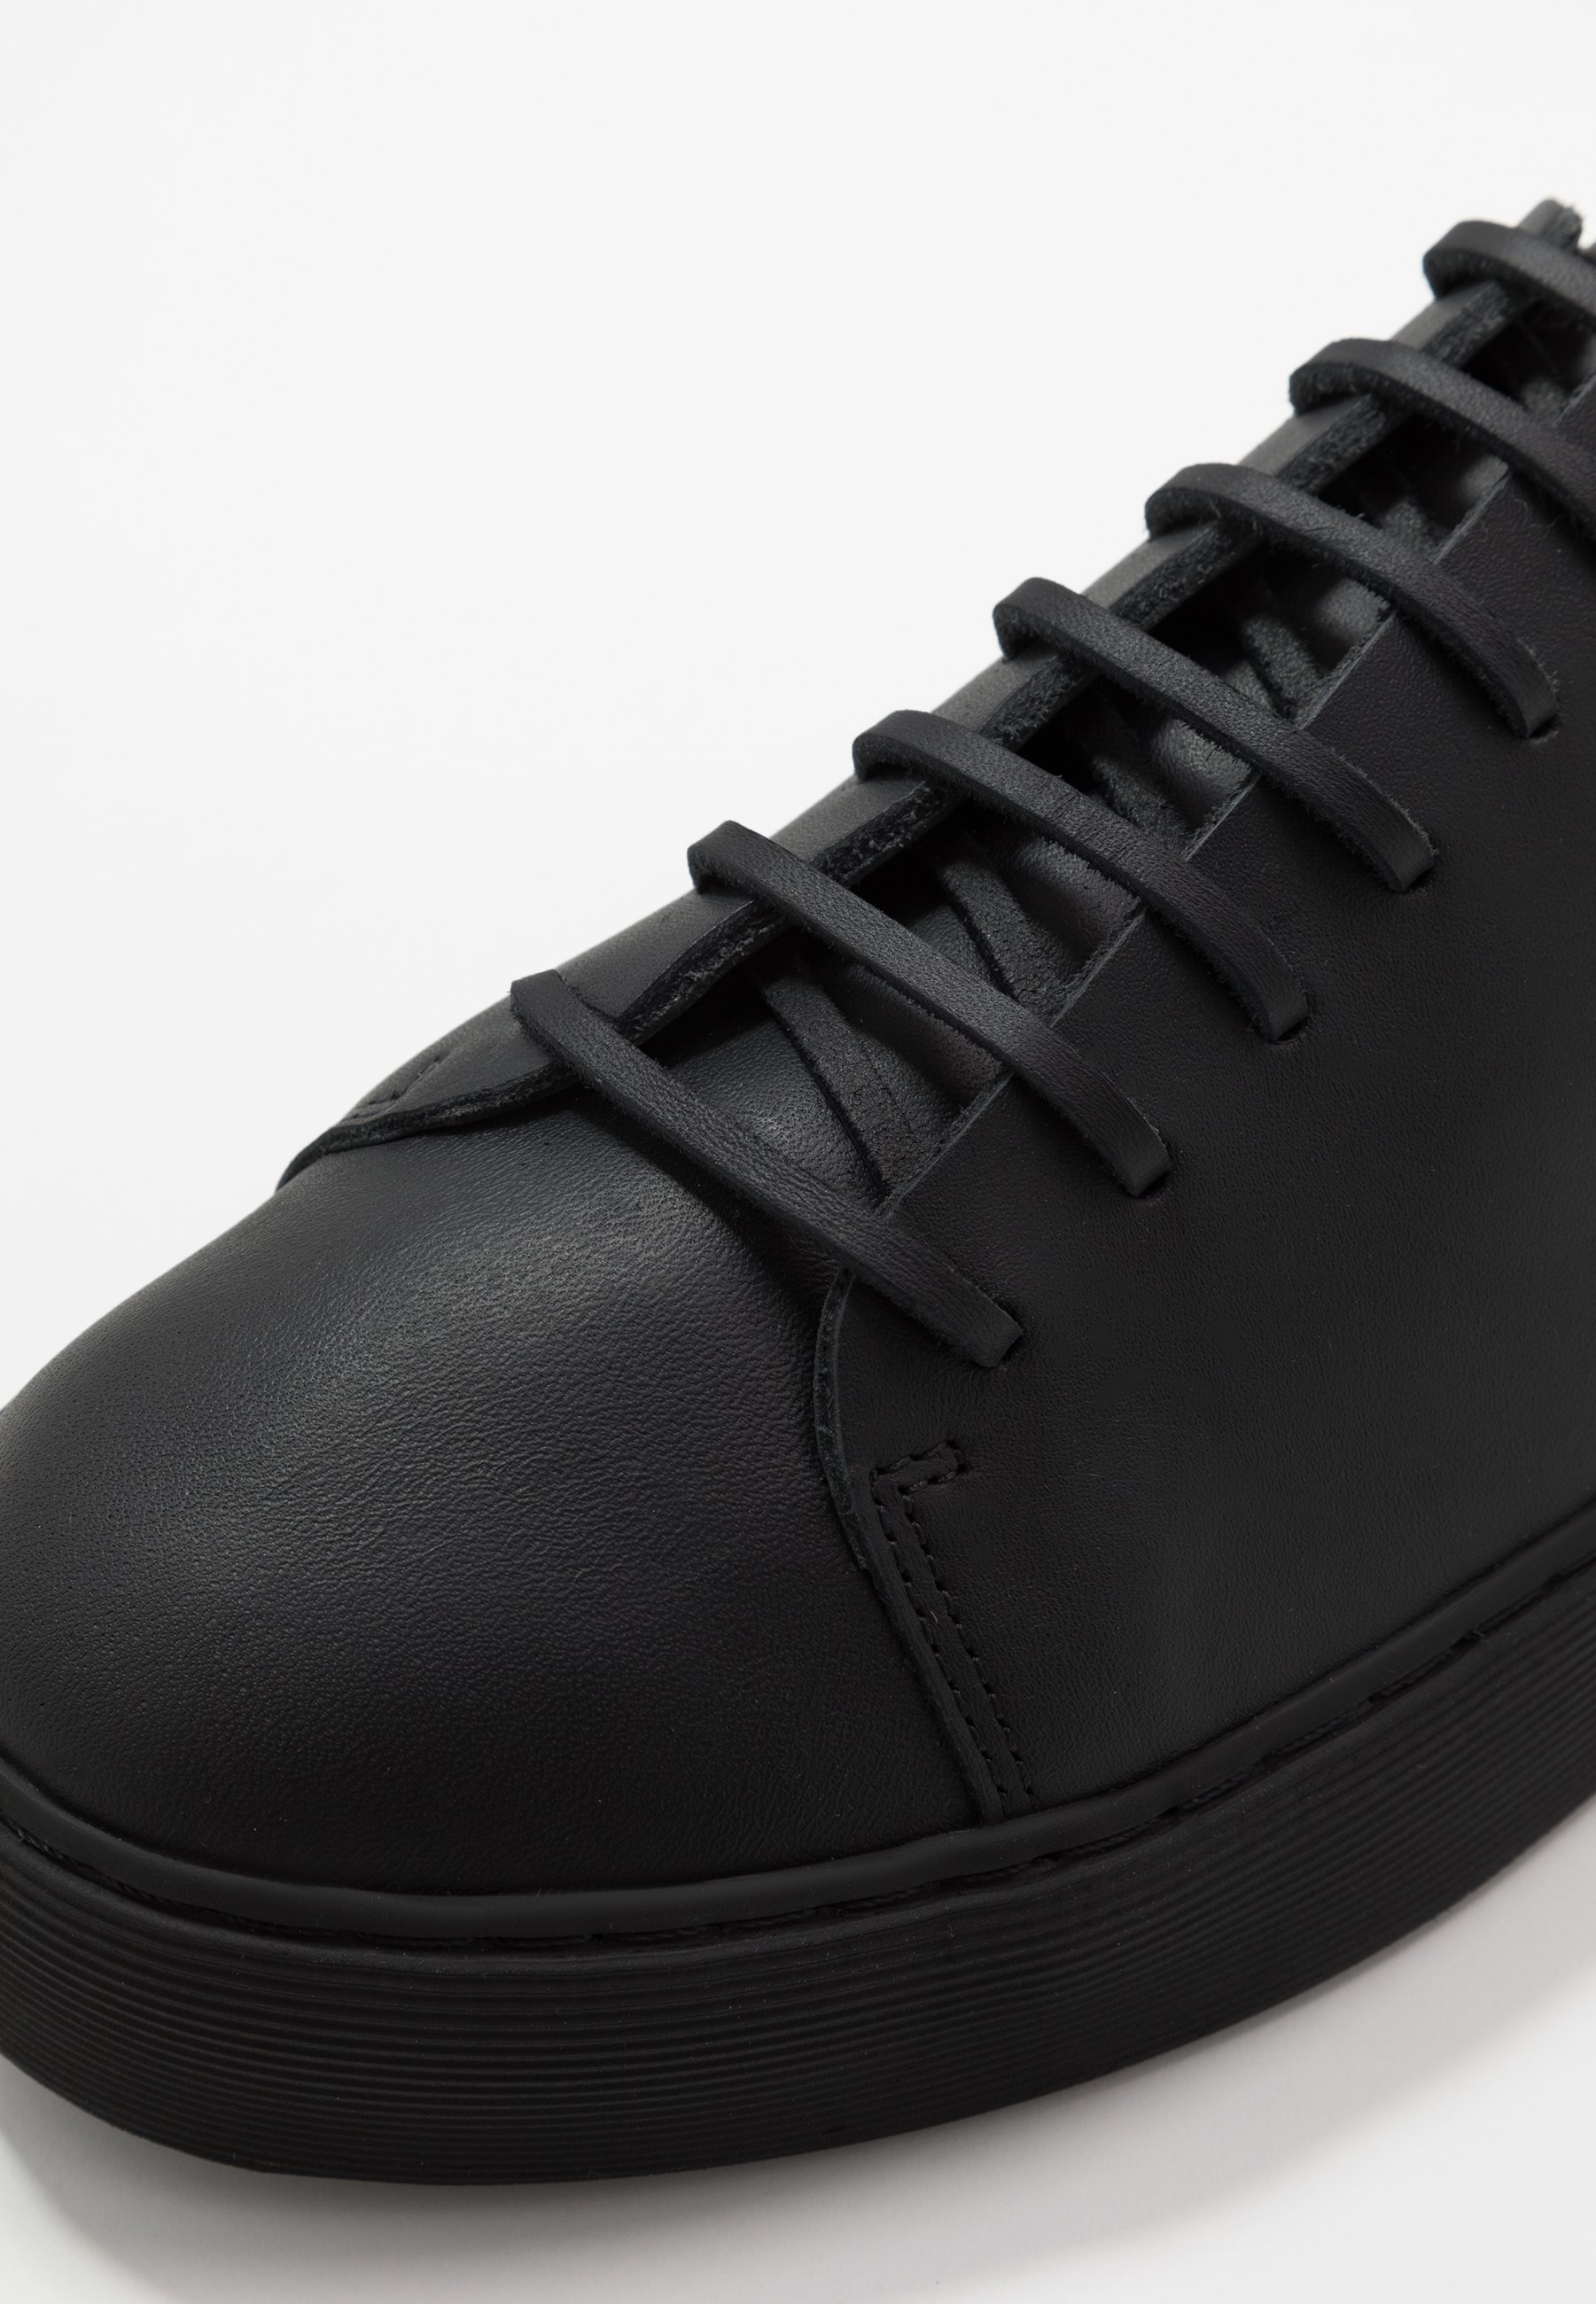 Royal RepubliQ DORIC DERBY SHOE - Sneakers basse - black 6cUUmj8B